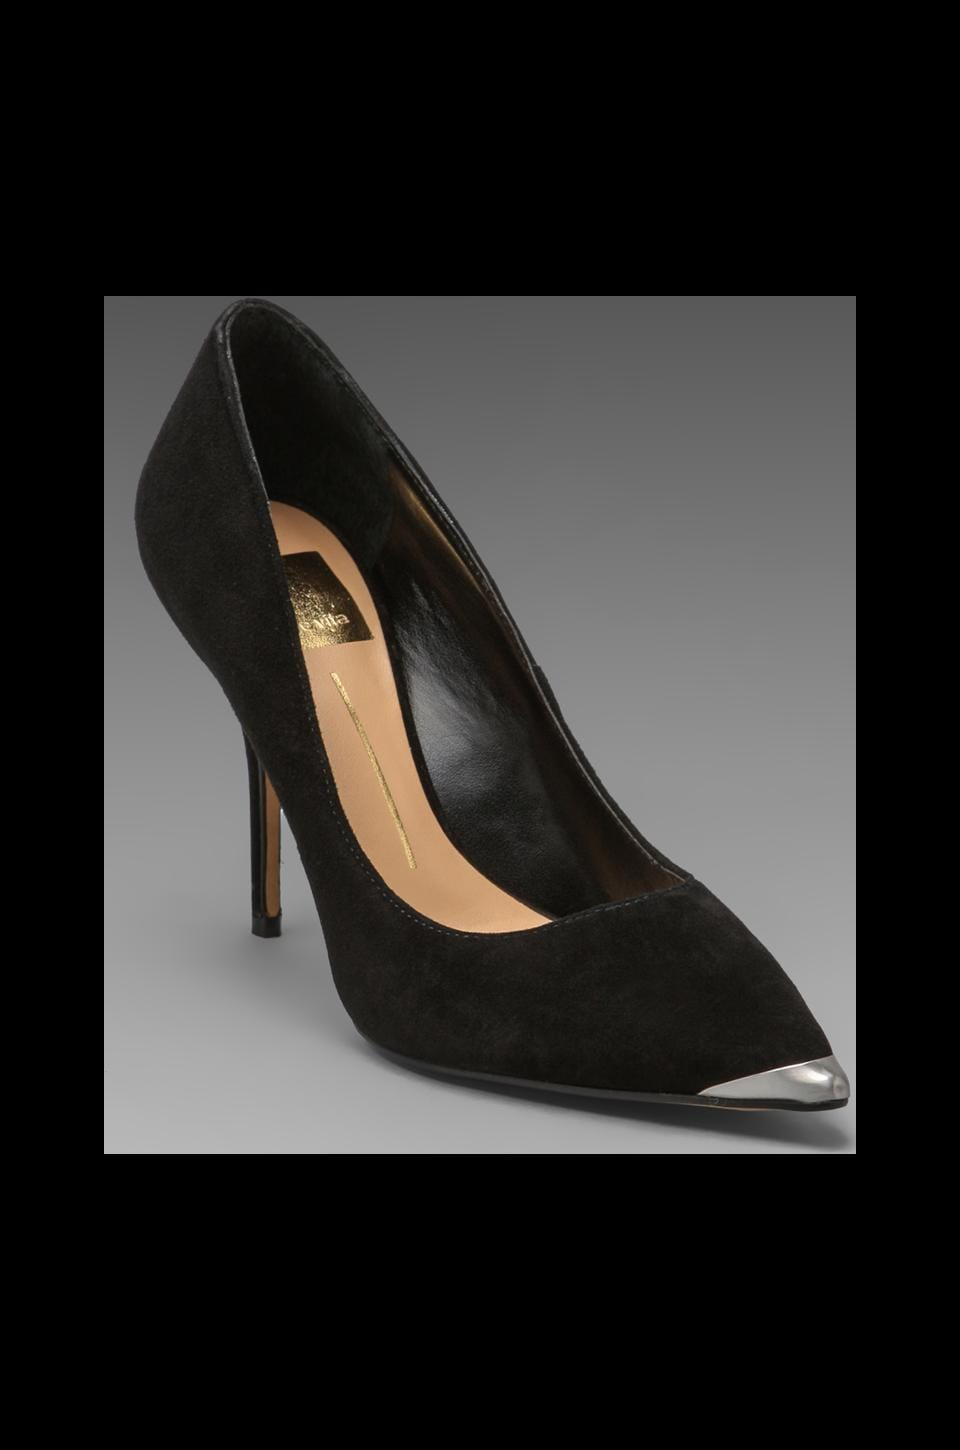 Dolce Vita Salma Pump in Black